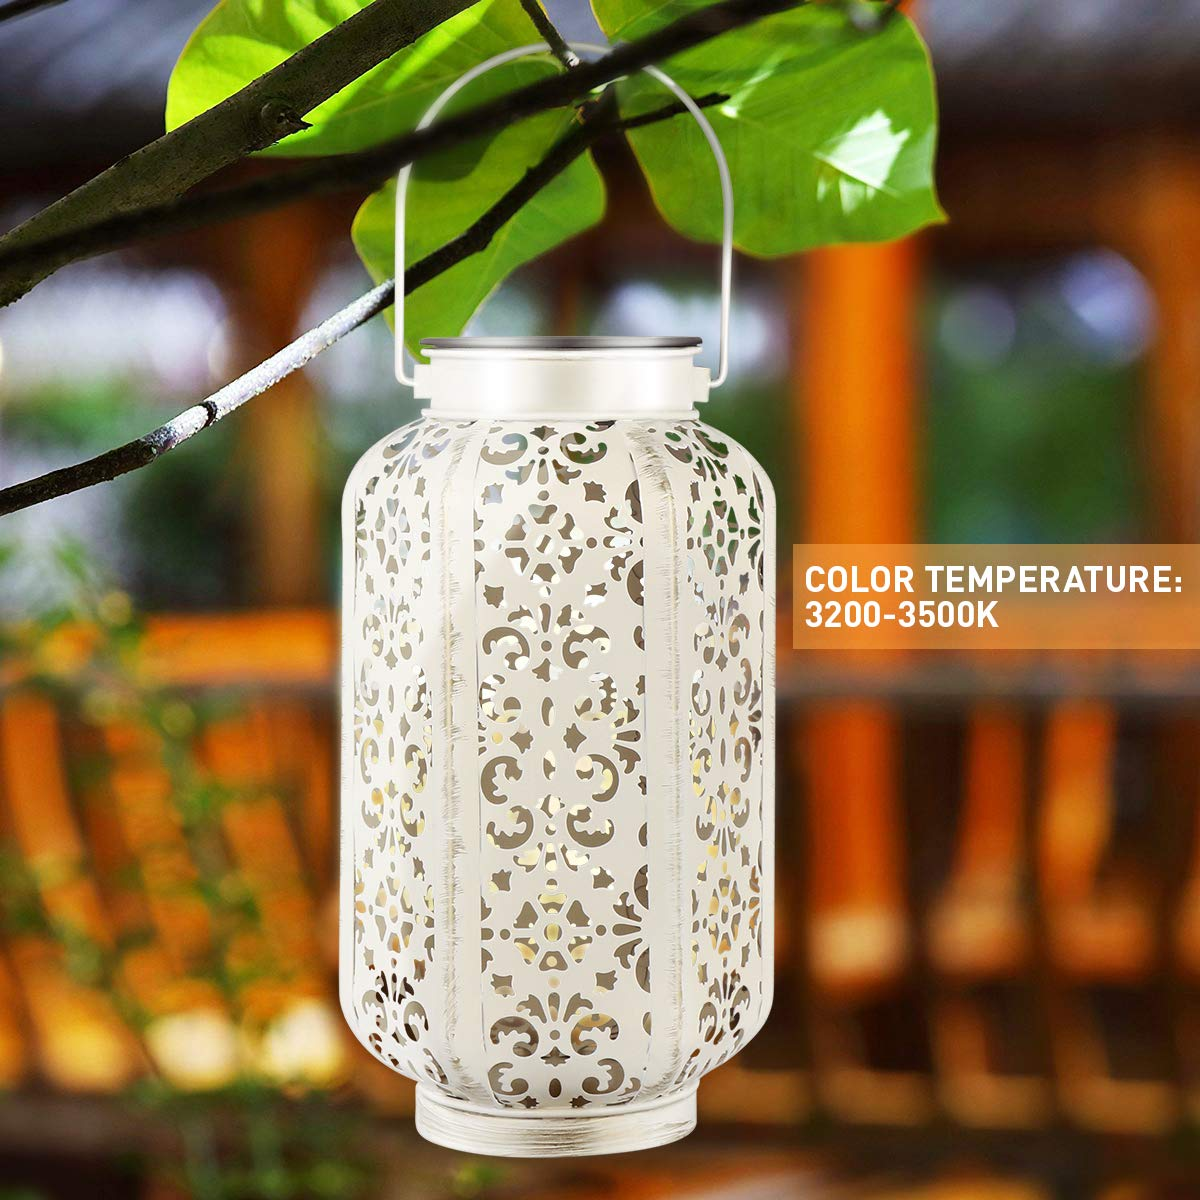 YUNLIGHTS Hanging Solar Lights Outdoor Solar Powered Lantern LED Lanterns Decorative lamp for Garden/Patio/Hallway, Waterproof, 8-10h Working Time, Warm White, 2 Pack